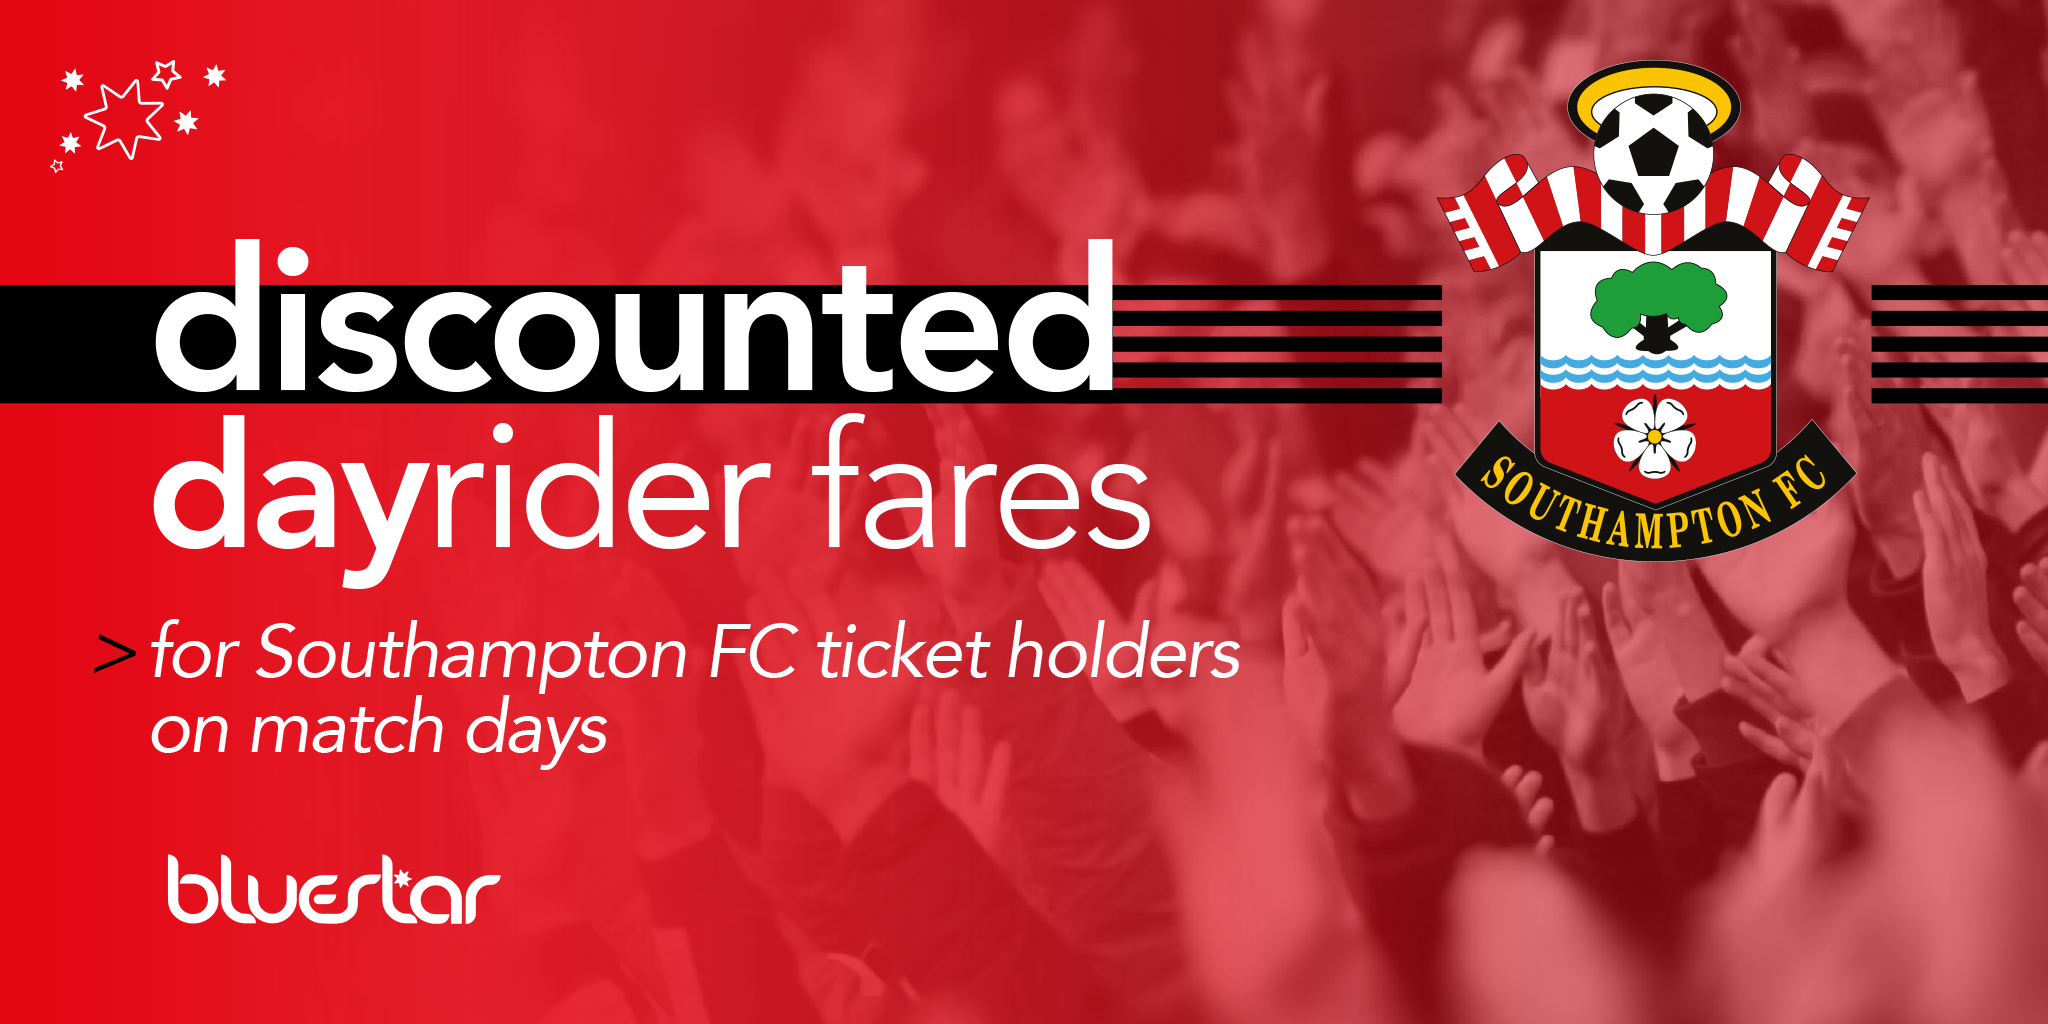 discounted dayrider fares for southampton fc ticket holders on match days